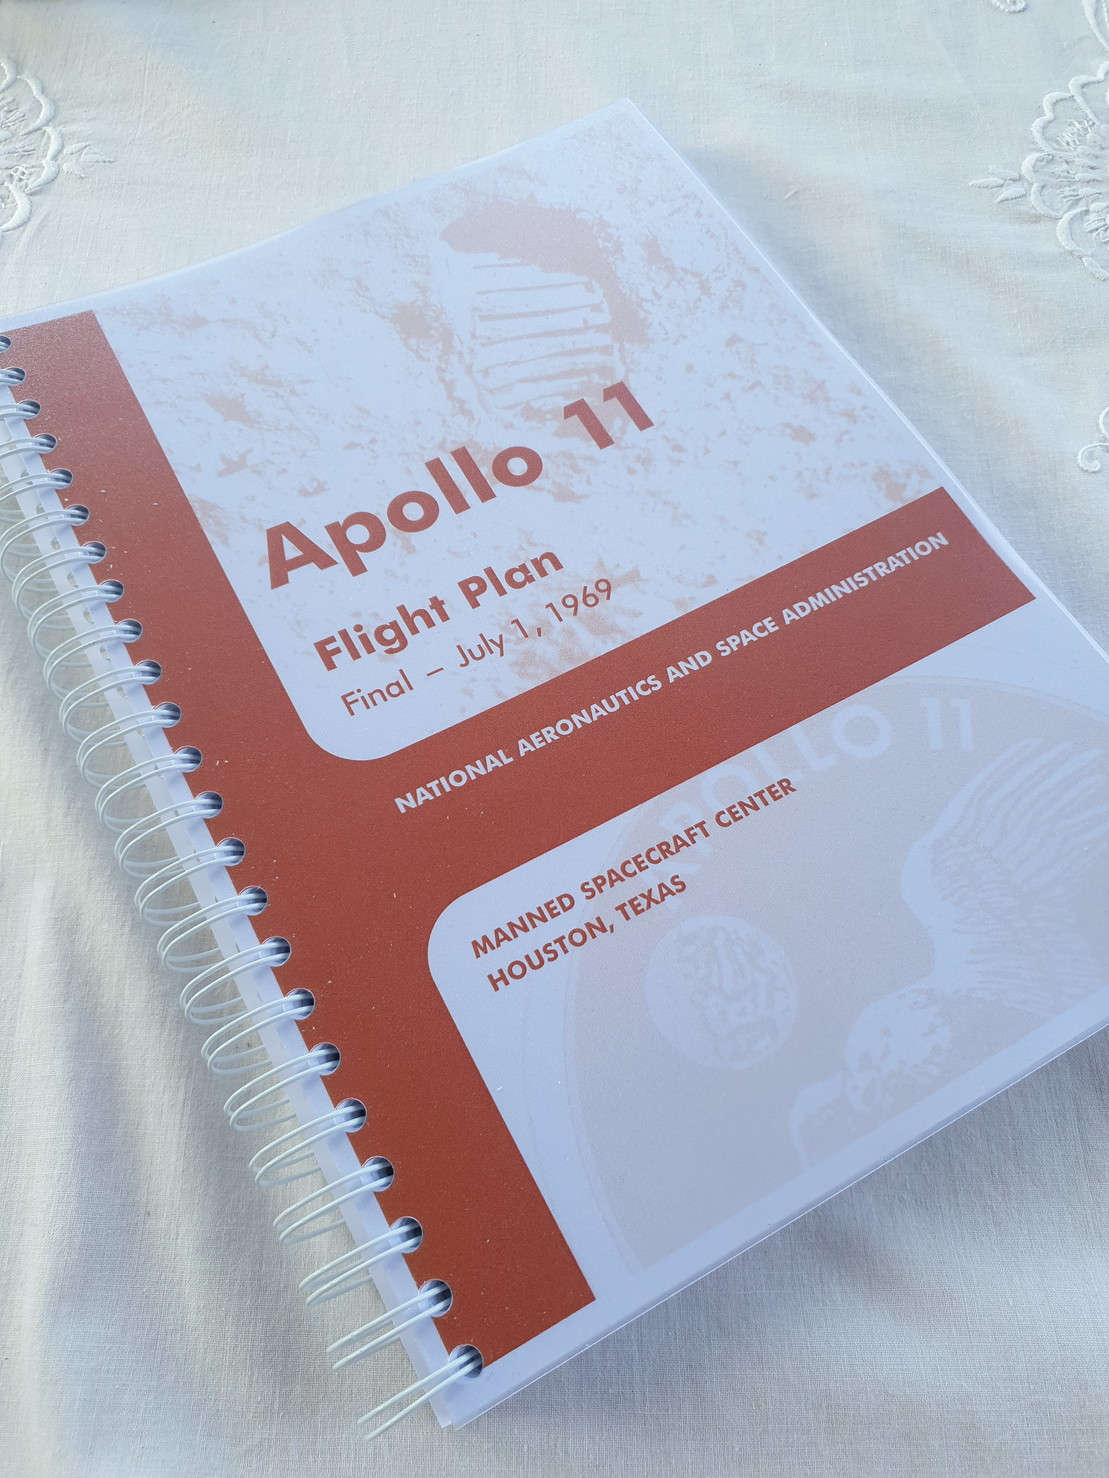 My spiral bound copy of the Apollo 11 Flight Plan